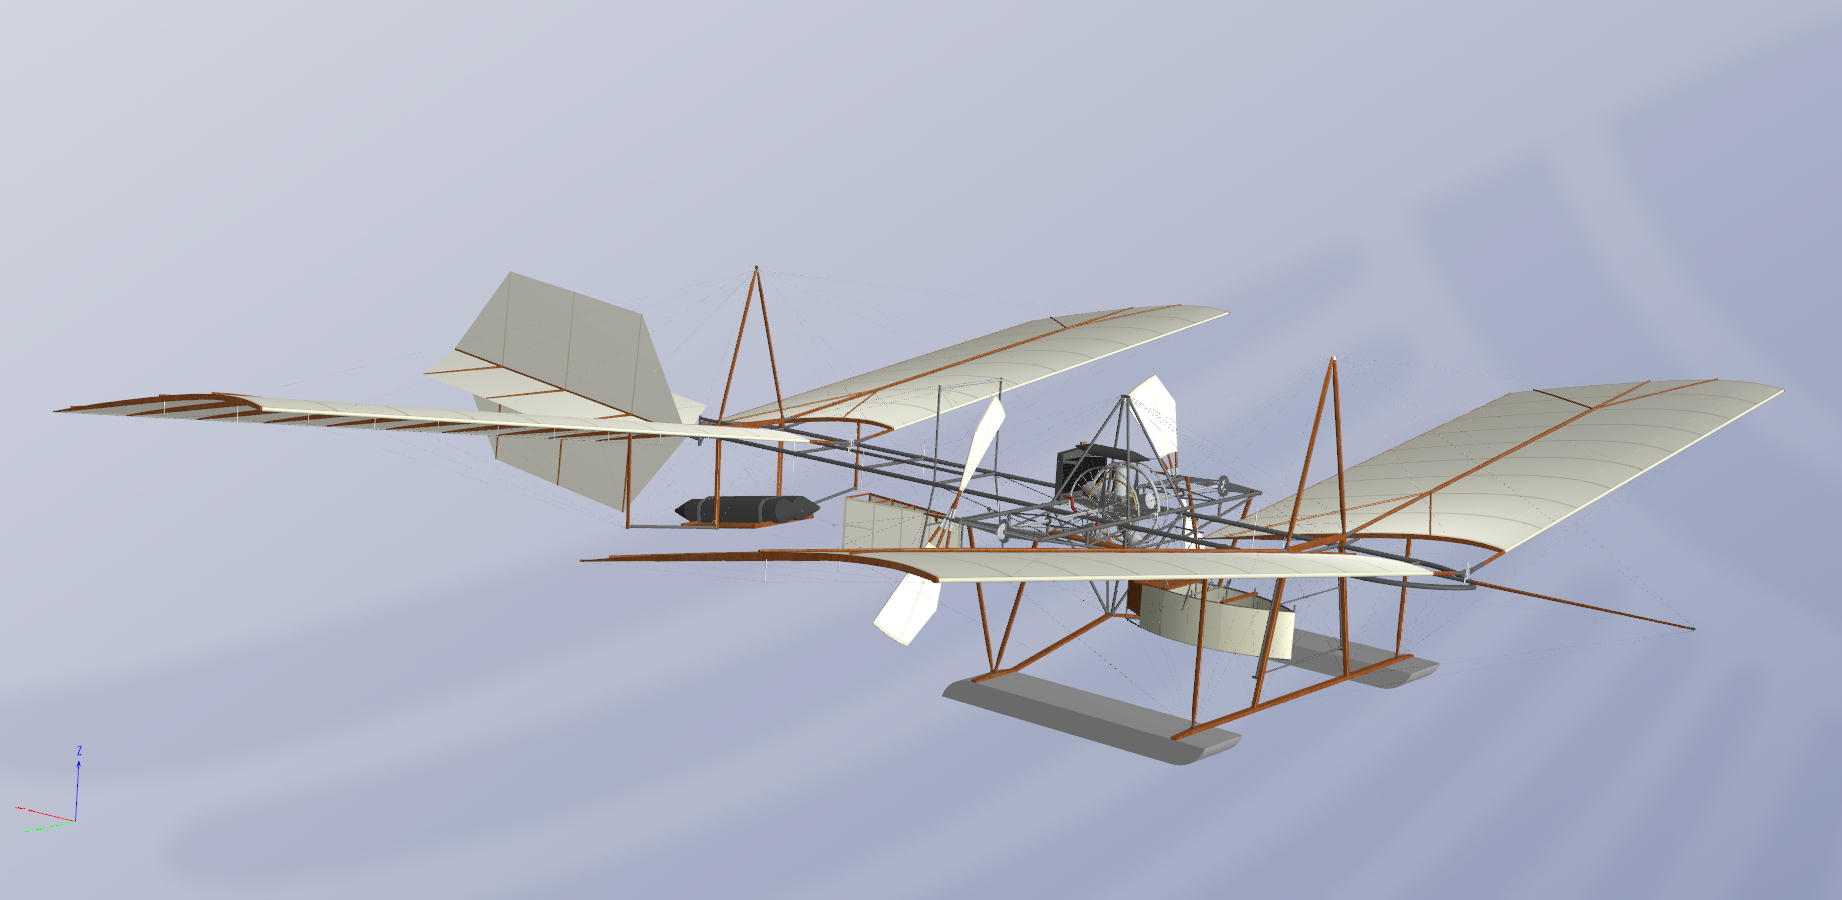 comparing the 1903 and 1914 aerodromes